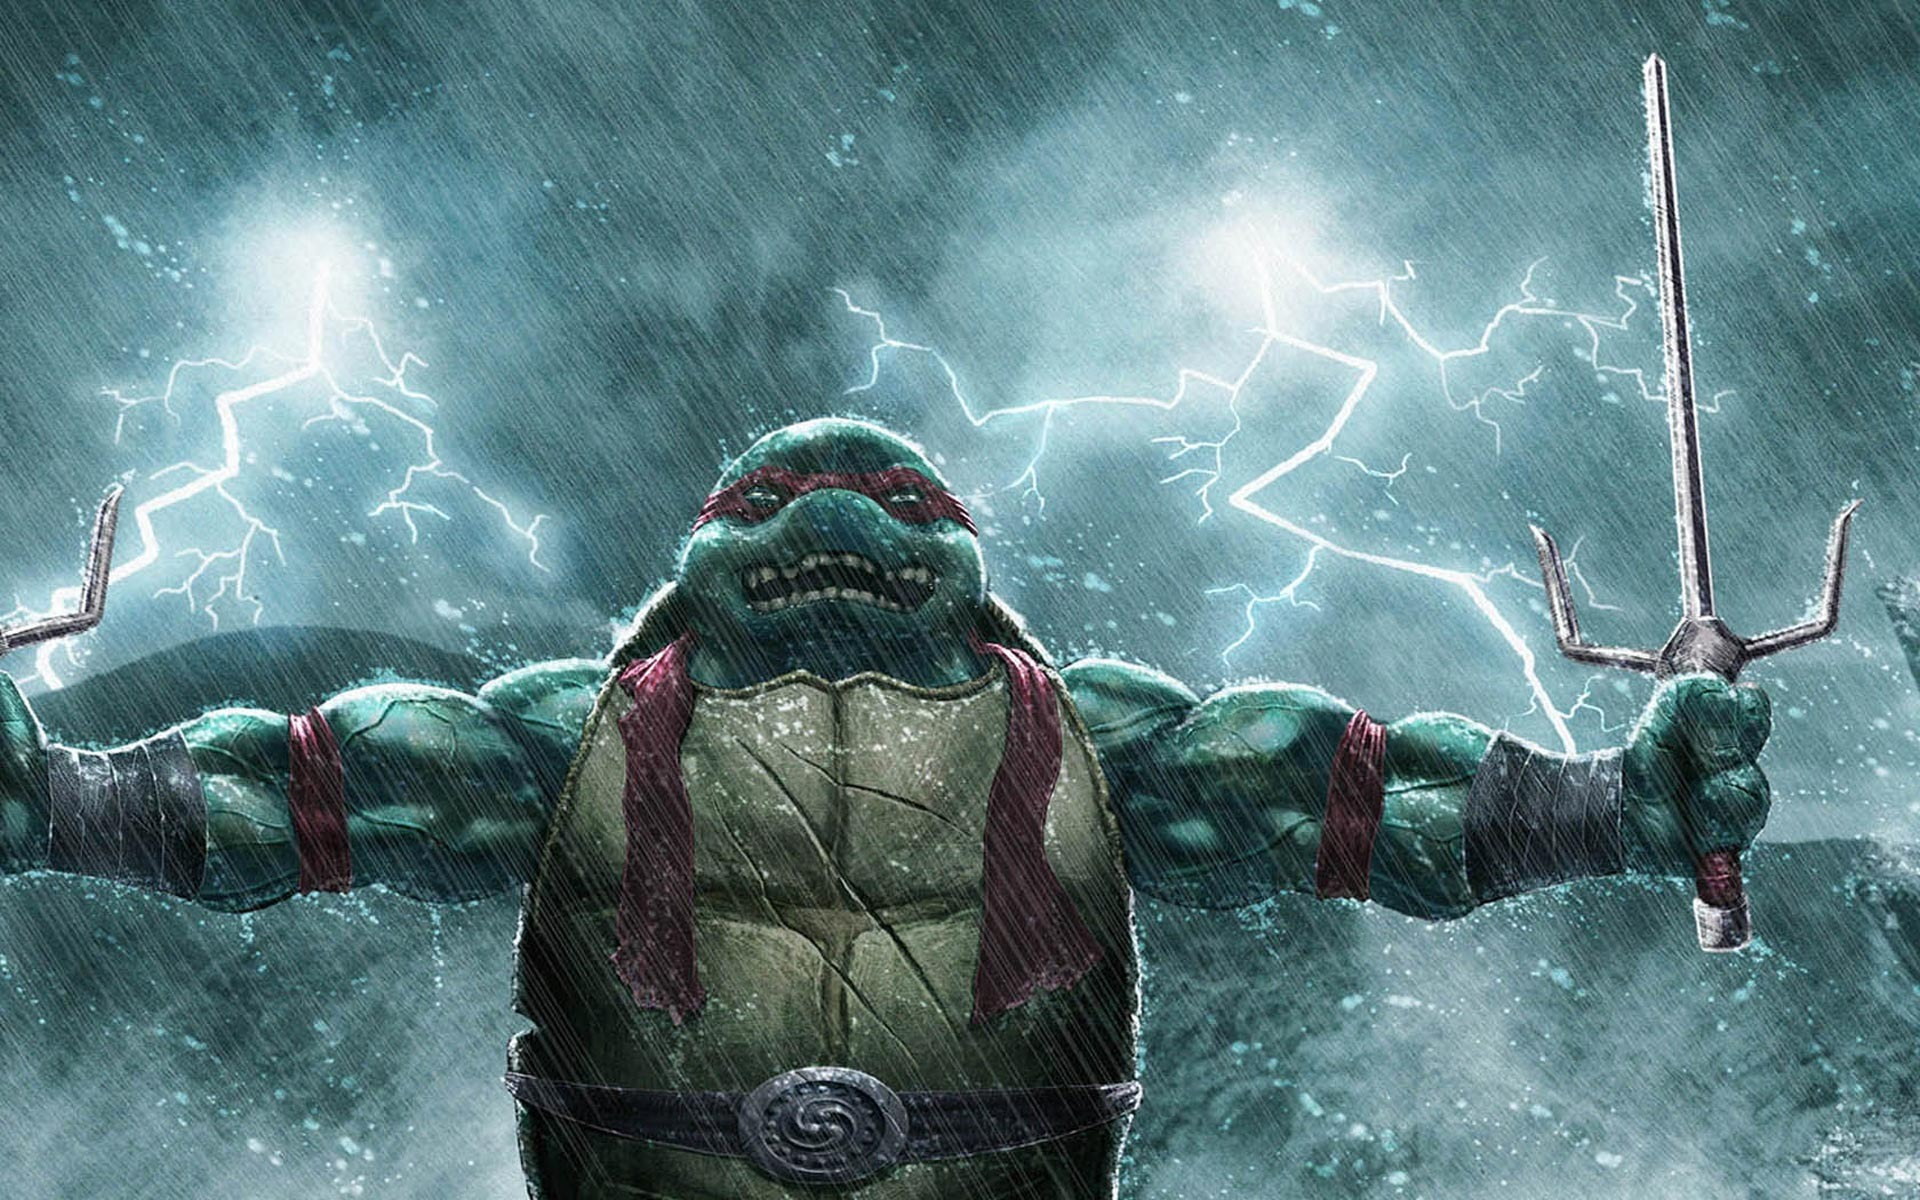 ninja turtles wallpaper 4639